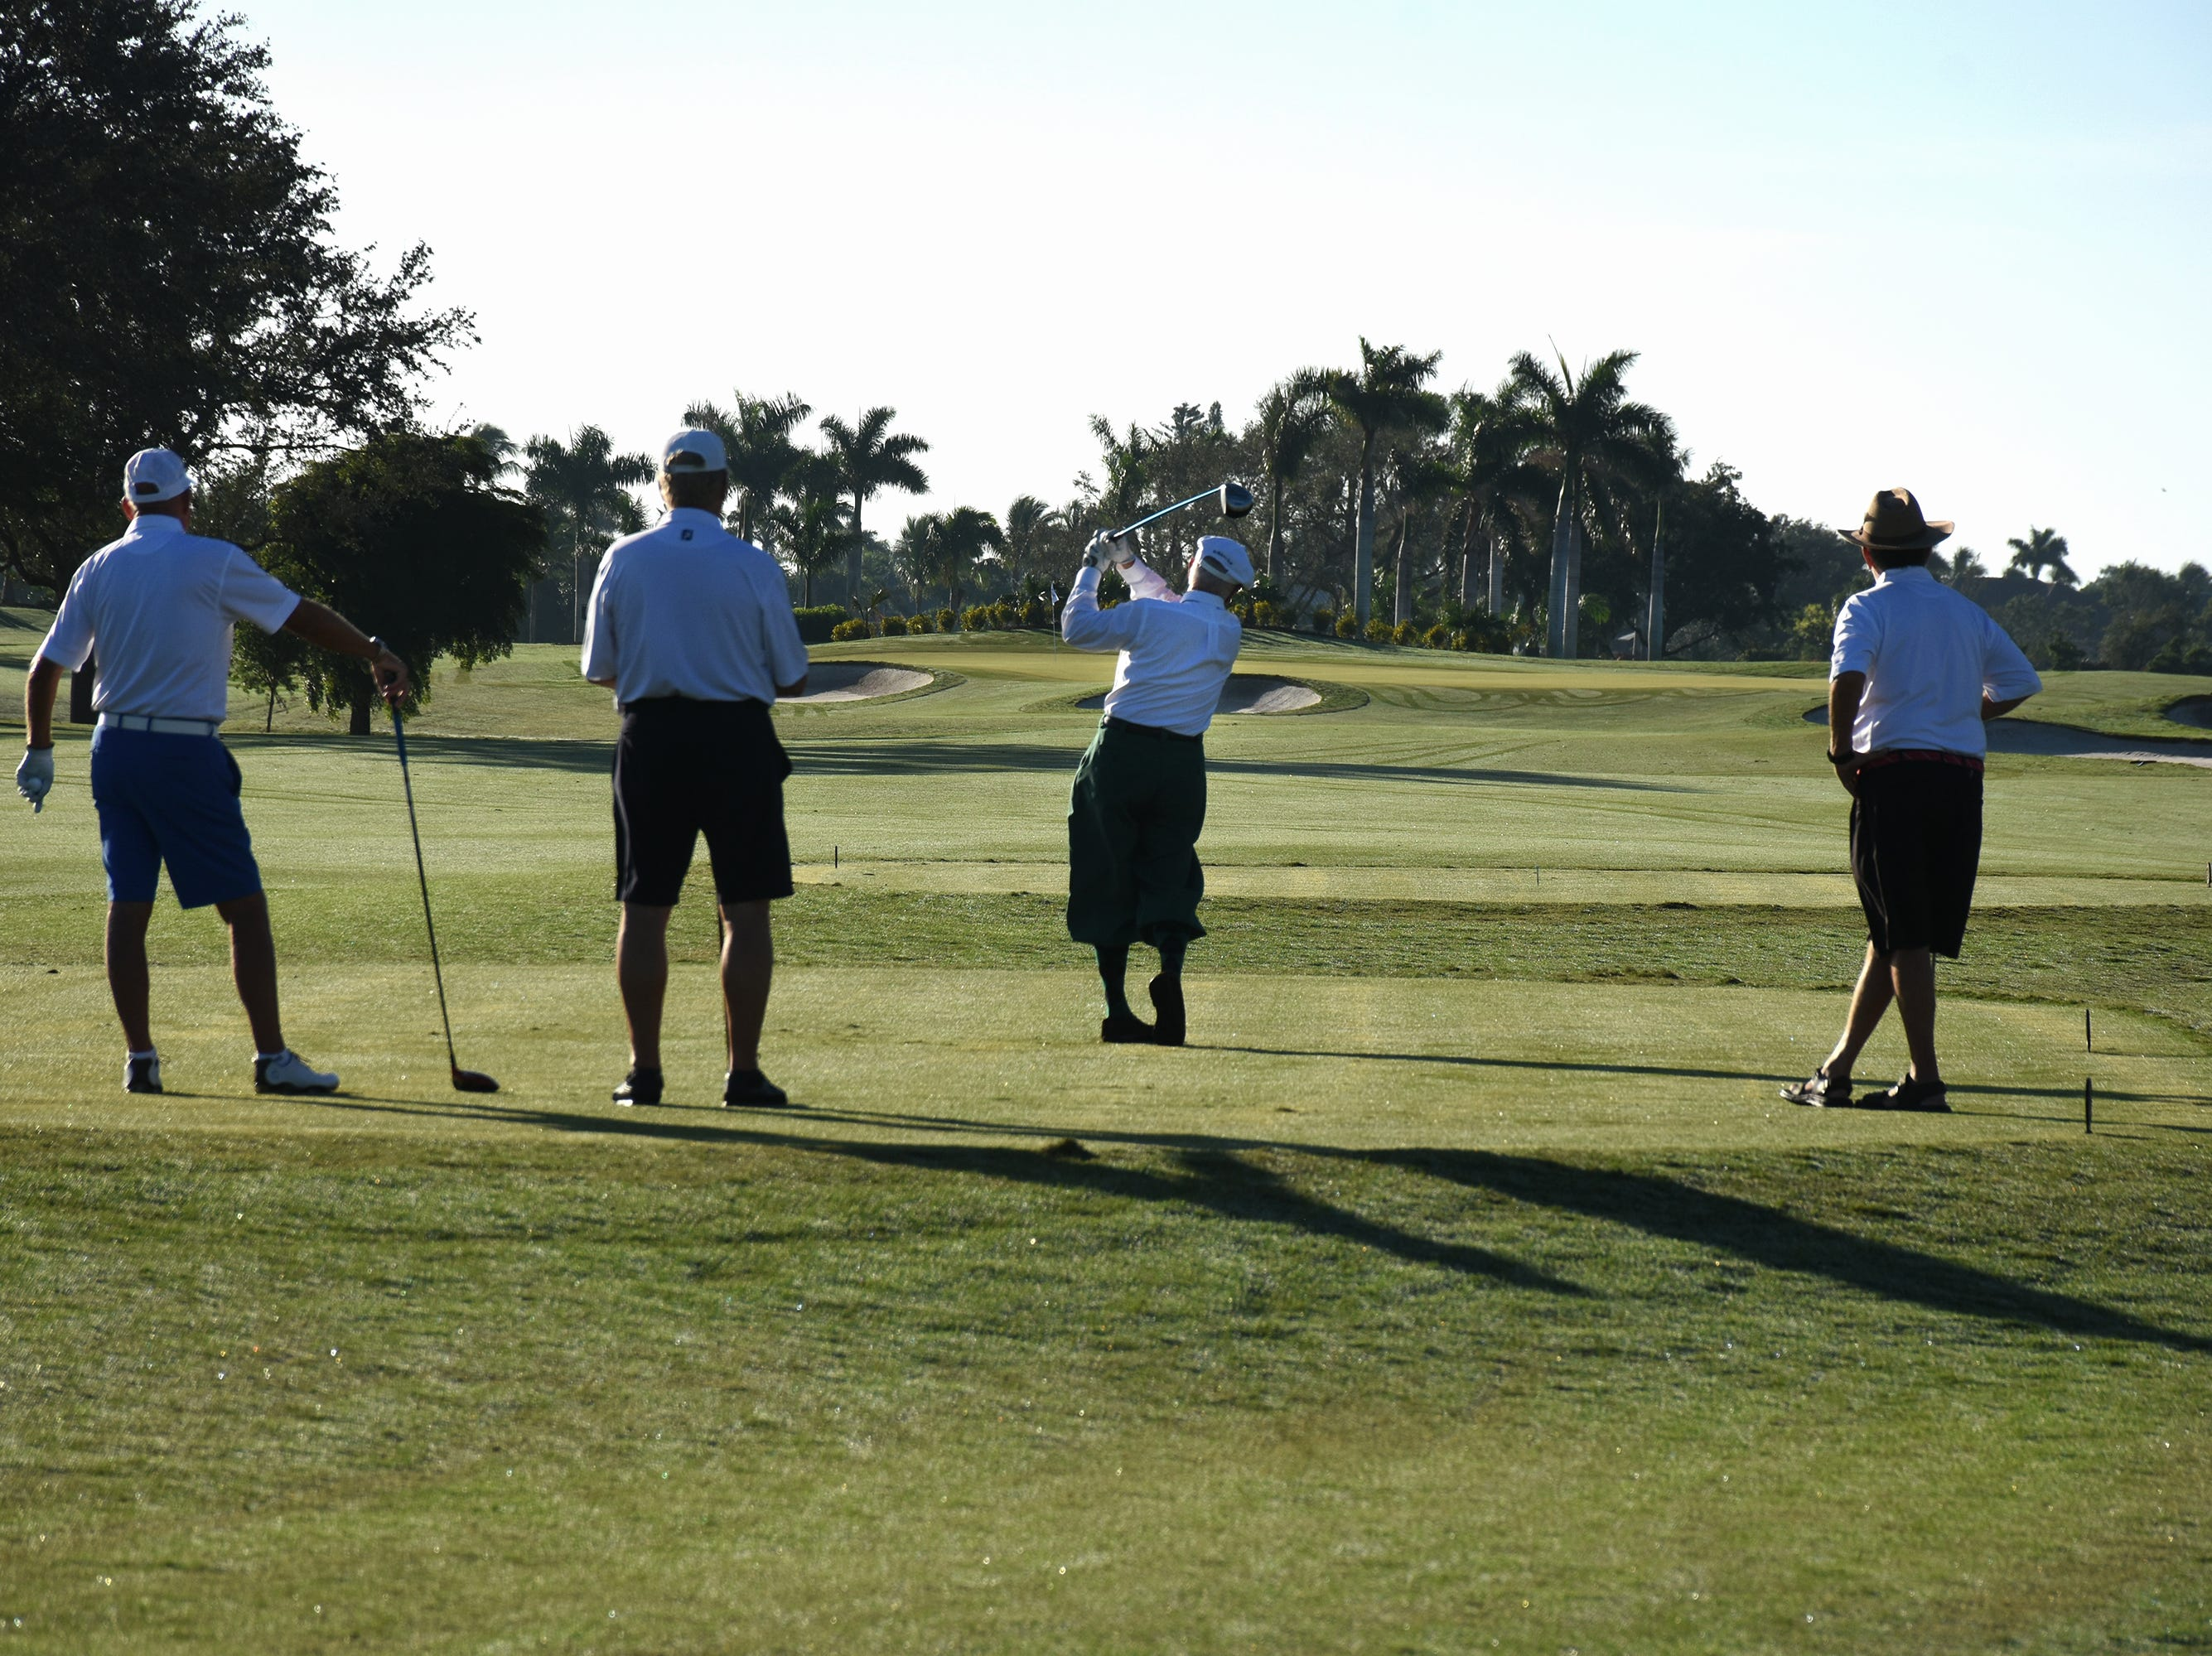 Terry McCreanor tees off in his retro golf togs. The Marco Police Foundation held their annual golf event Saturday morning on the Island Country Club course.